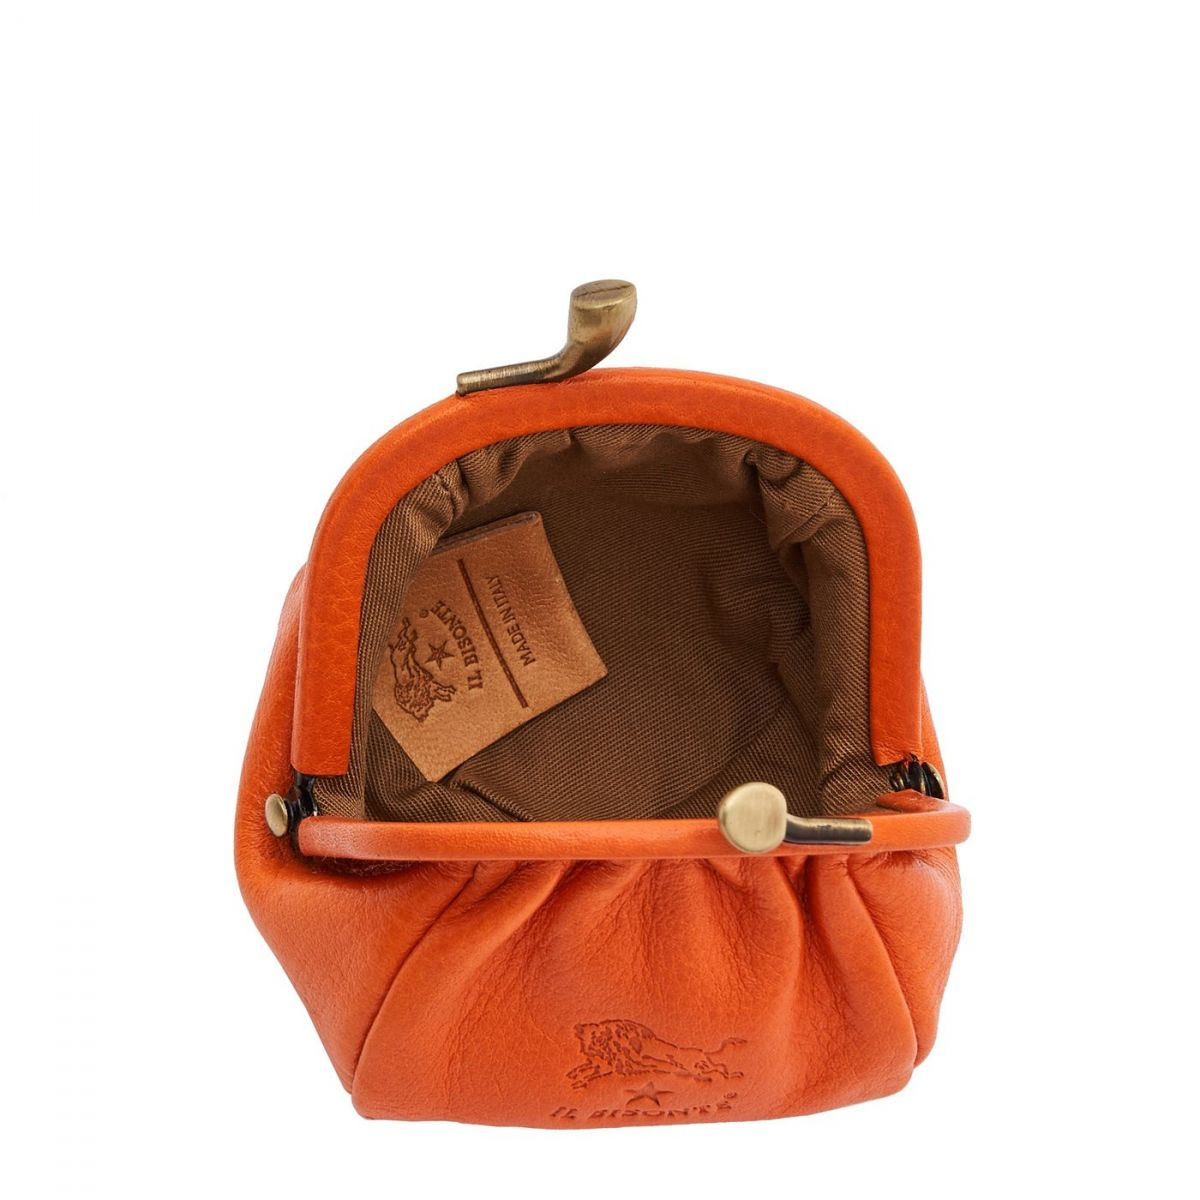 Women's Coin Purse  in Cowhide Double Leather SCP016 color Orange | Details